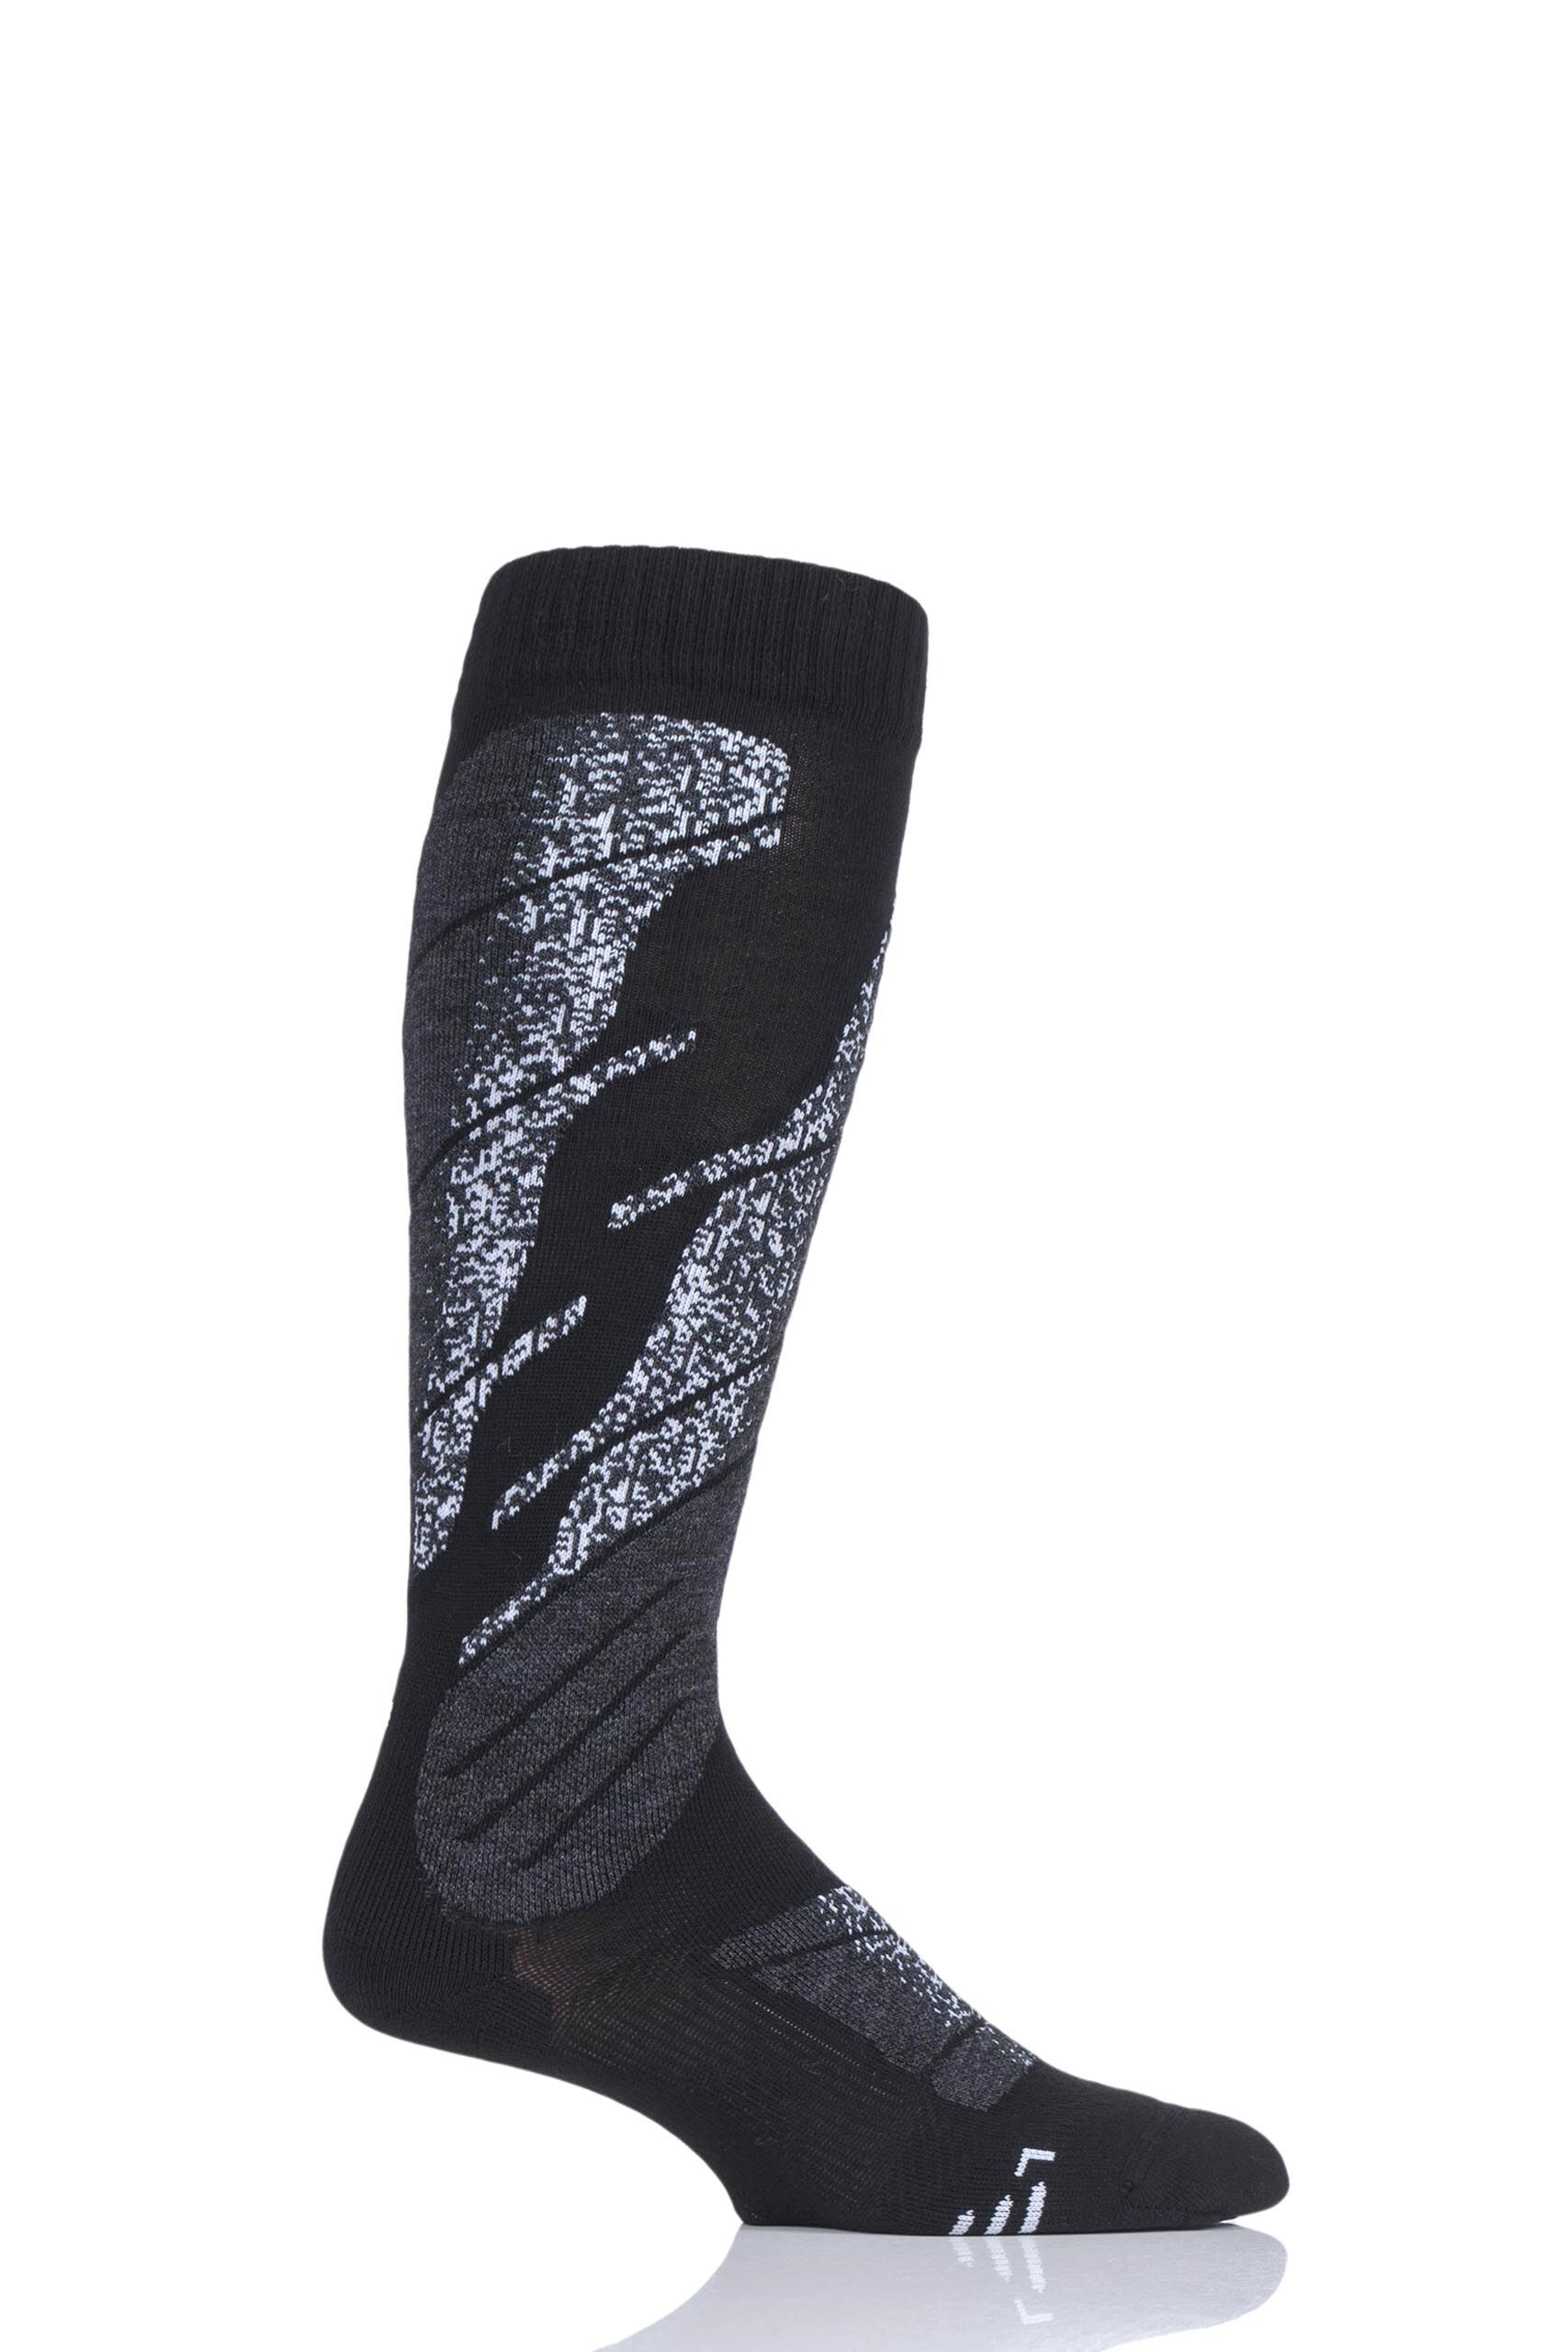 Image of 1 Pair Black All Mountain Ski Socks Men's 6-7.5 Mens - UYN